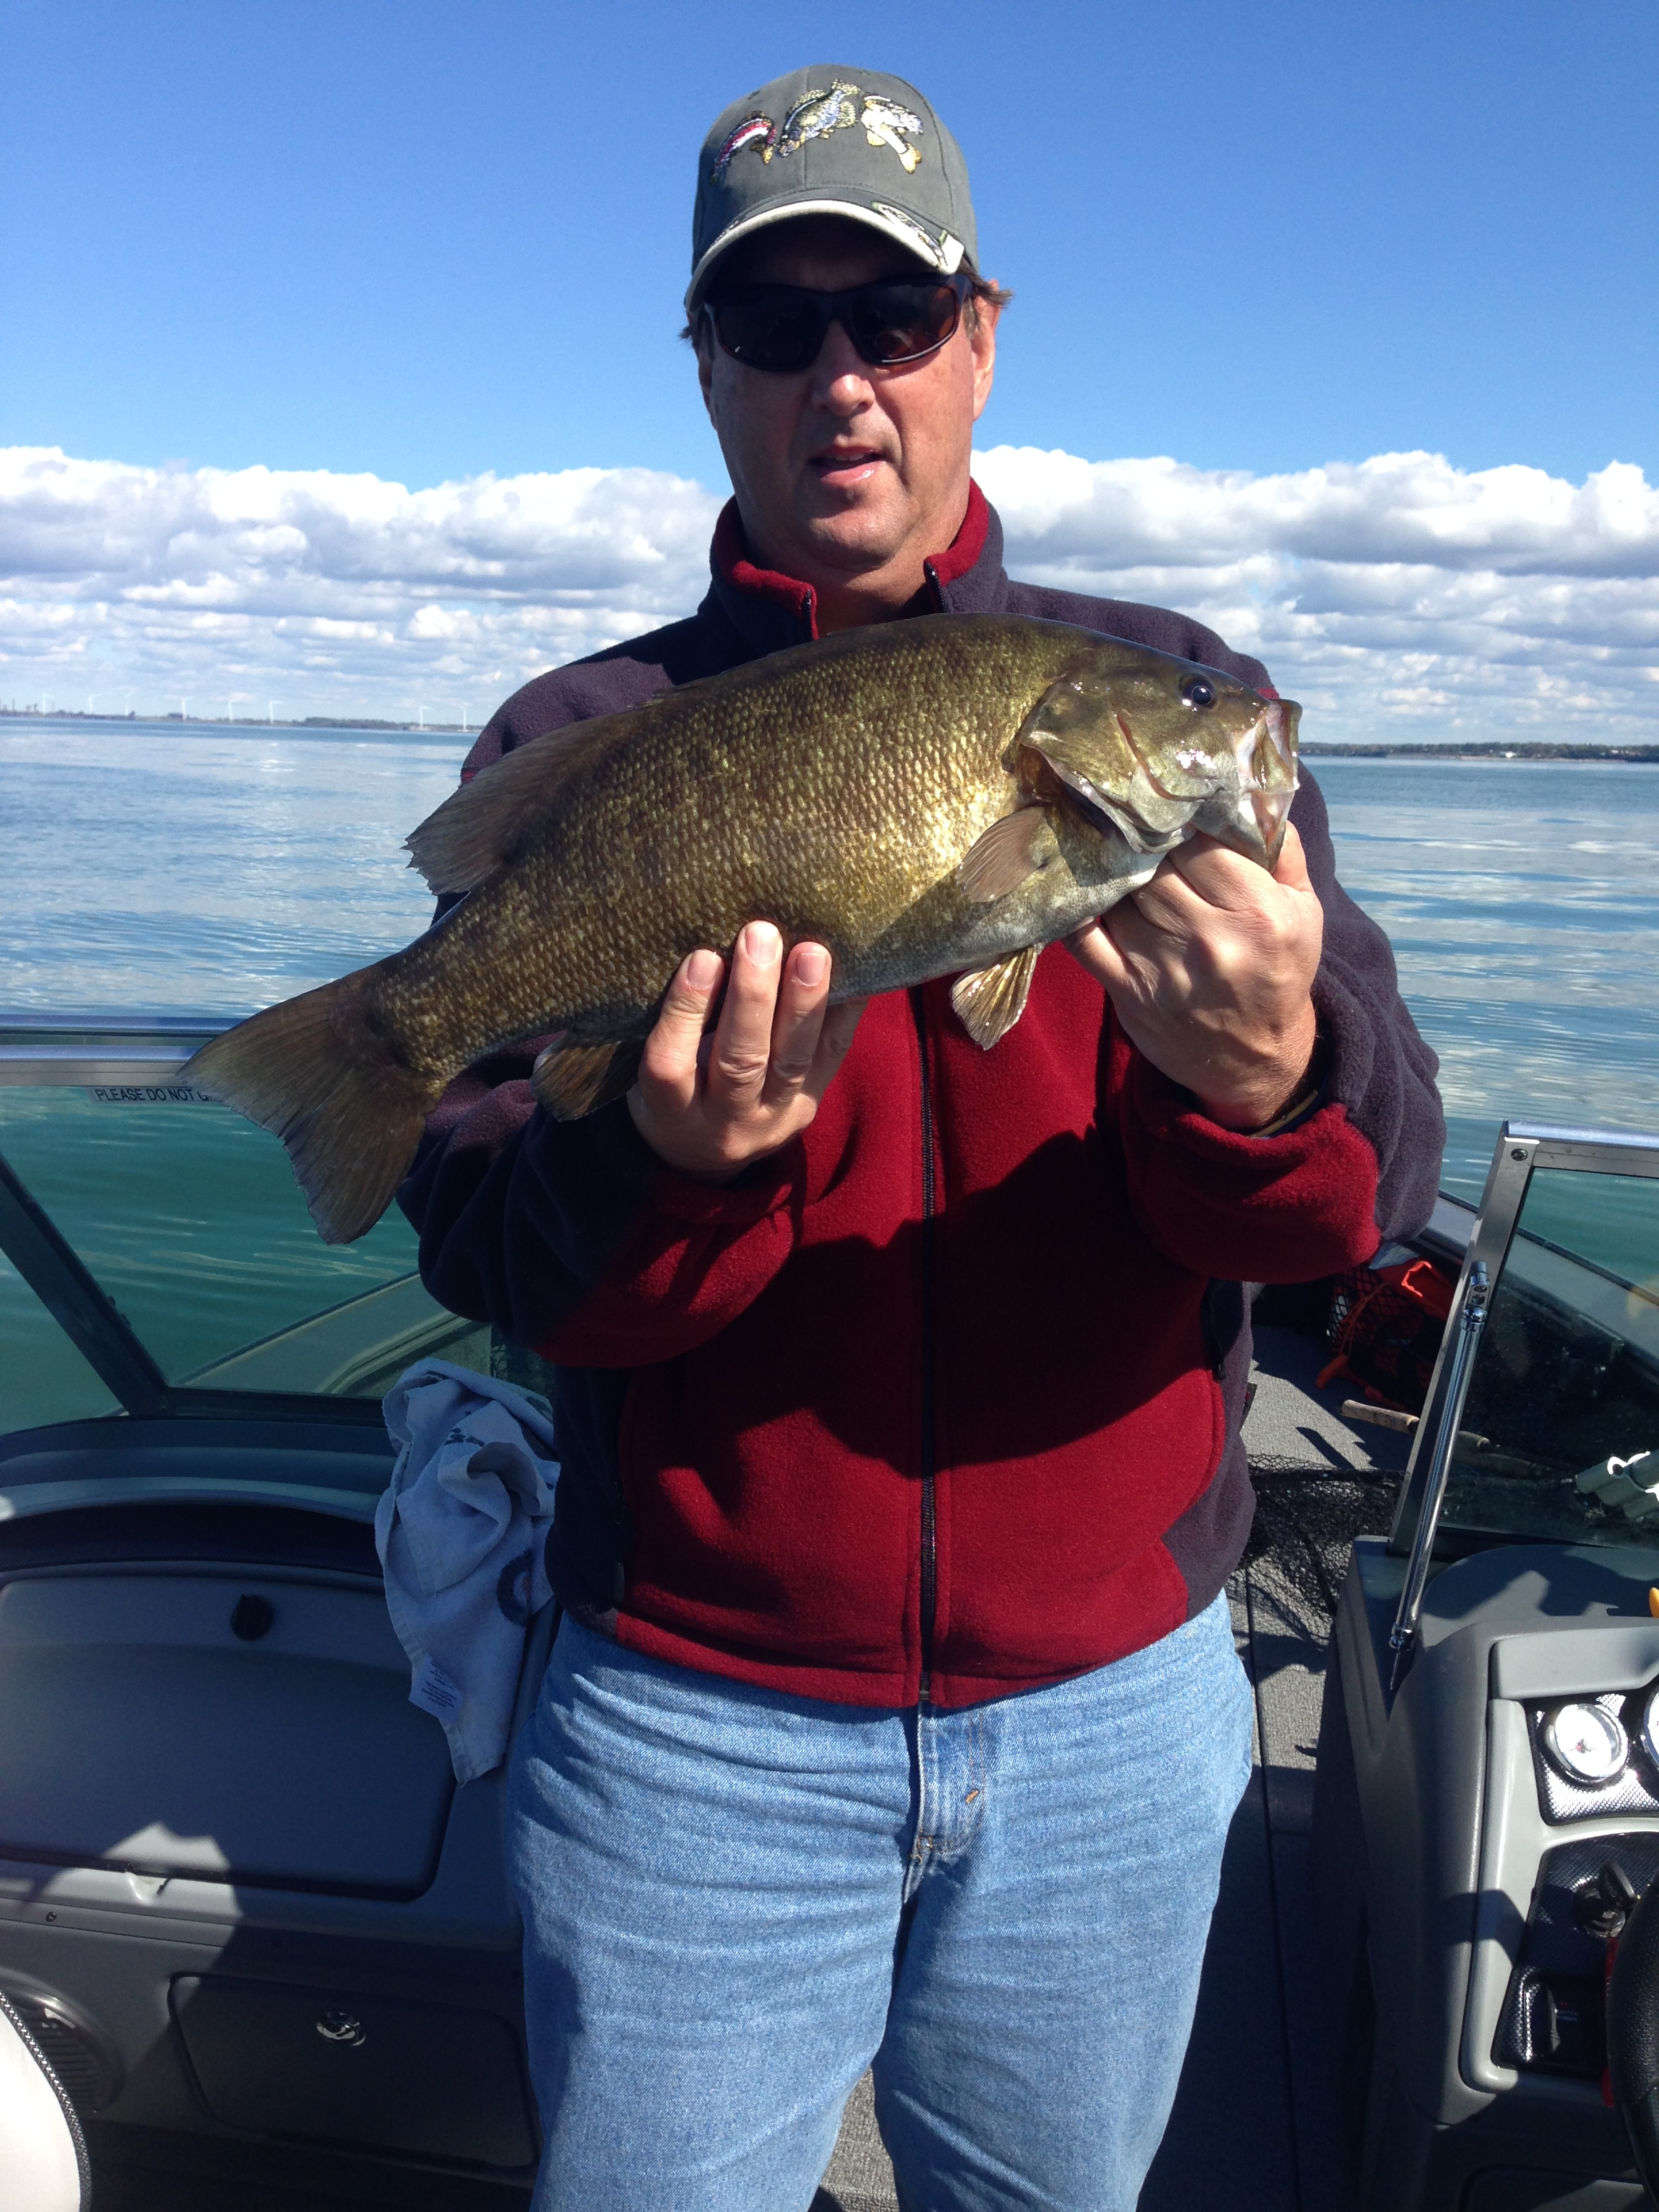 some pictures from october fishing on lake erie near